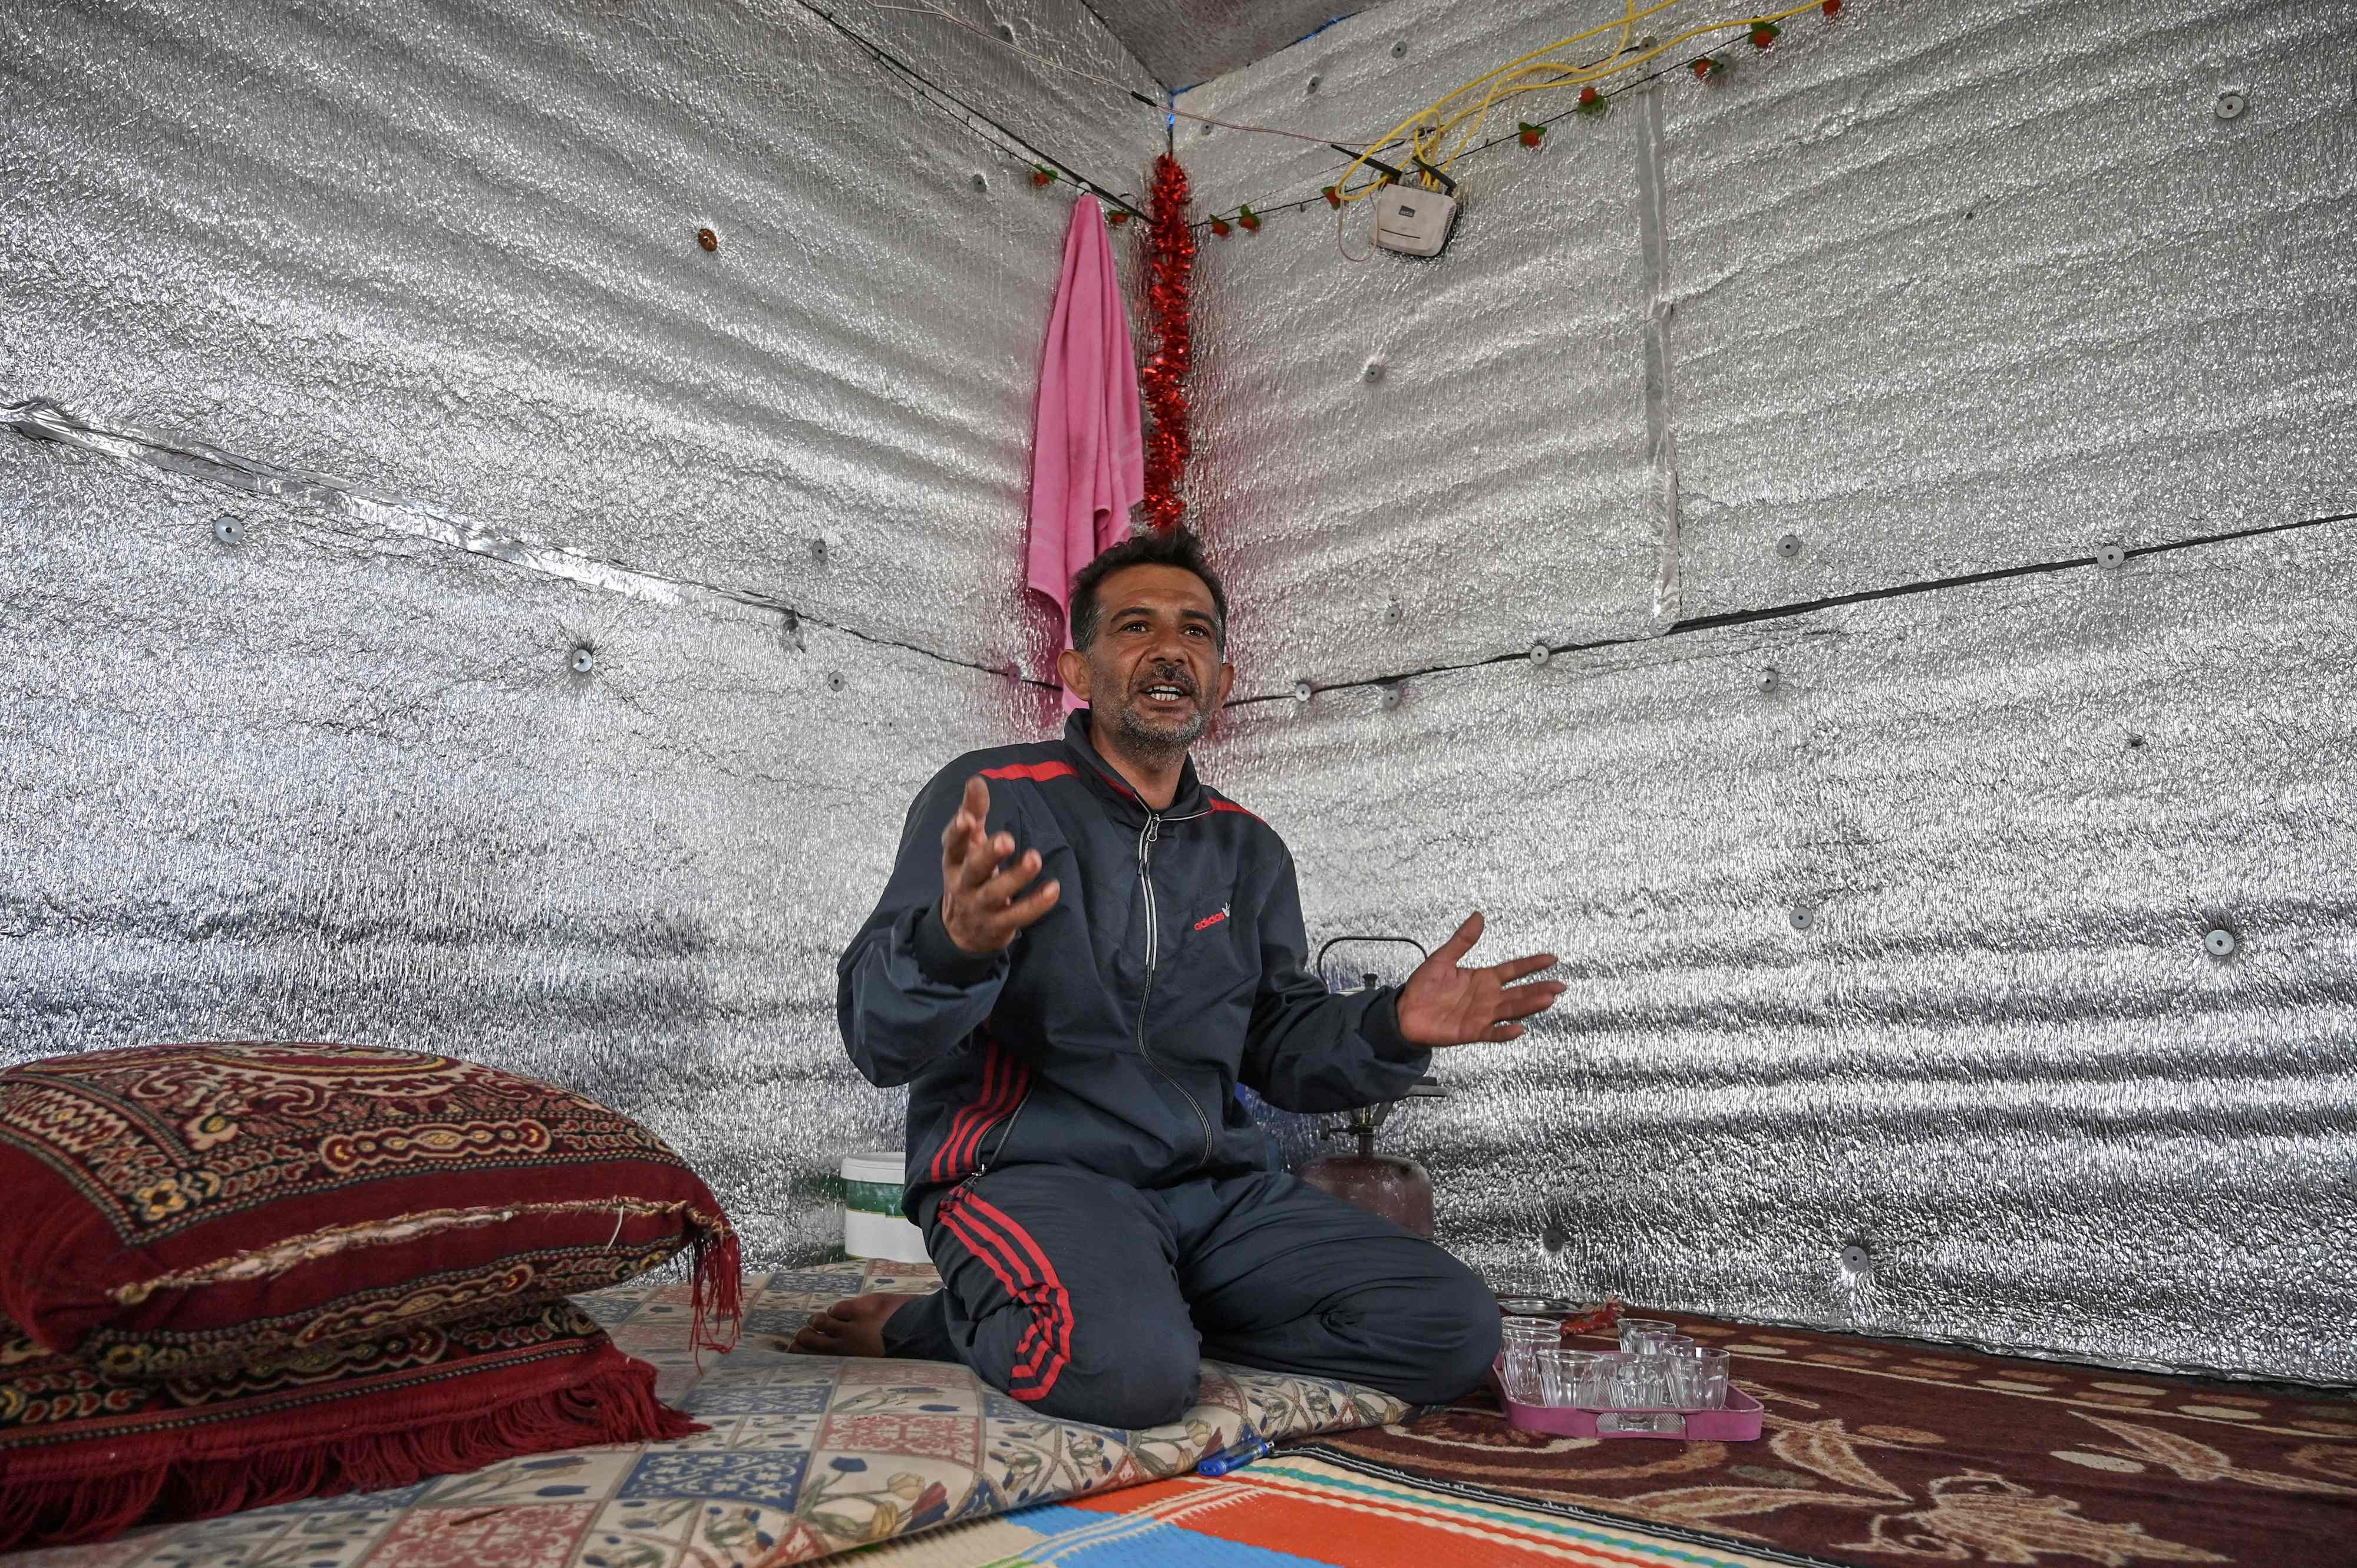 Hamad al-Abdallah,in his new concrete home at a camp created by Turkey's Humanitarian Relief Foundation (IHH) near Kafr Lusin on the border with Turkey in Syria's northwestern province of Idlib, March 10, 2020. (AFP)